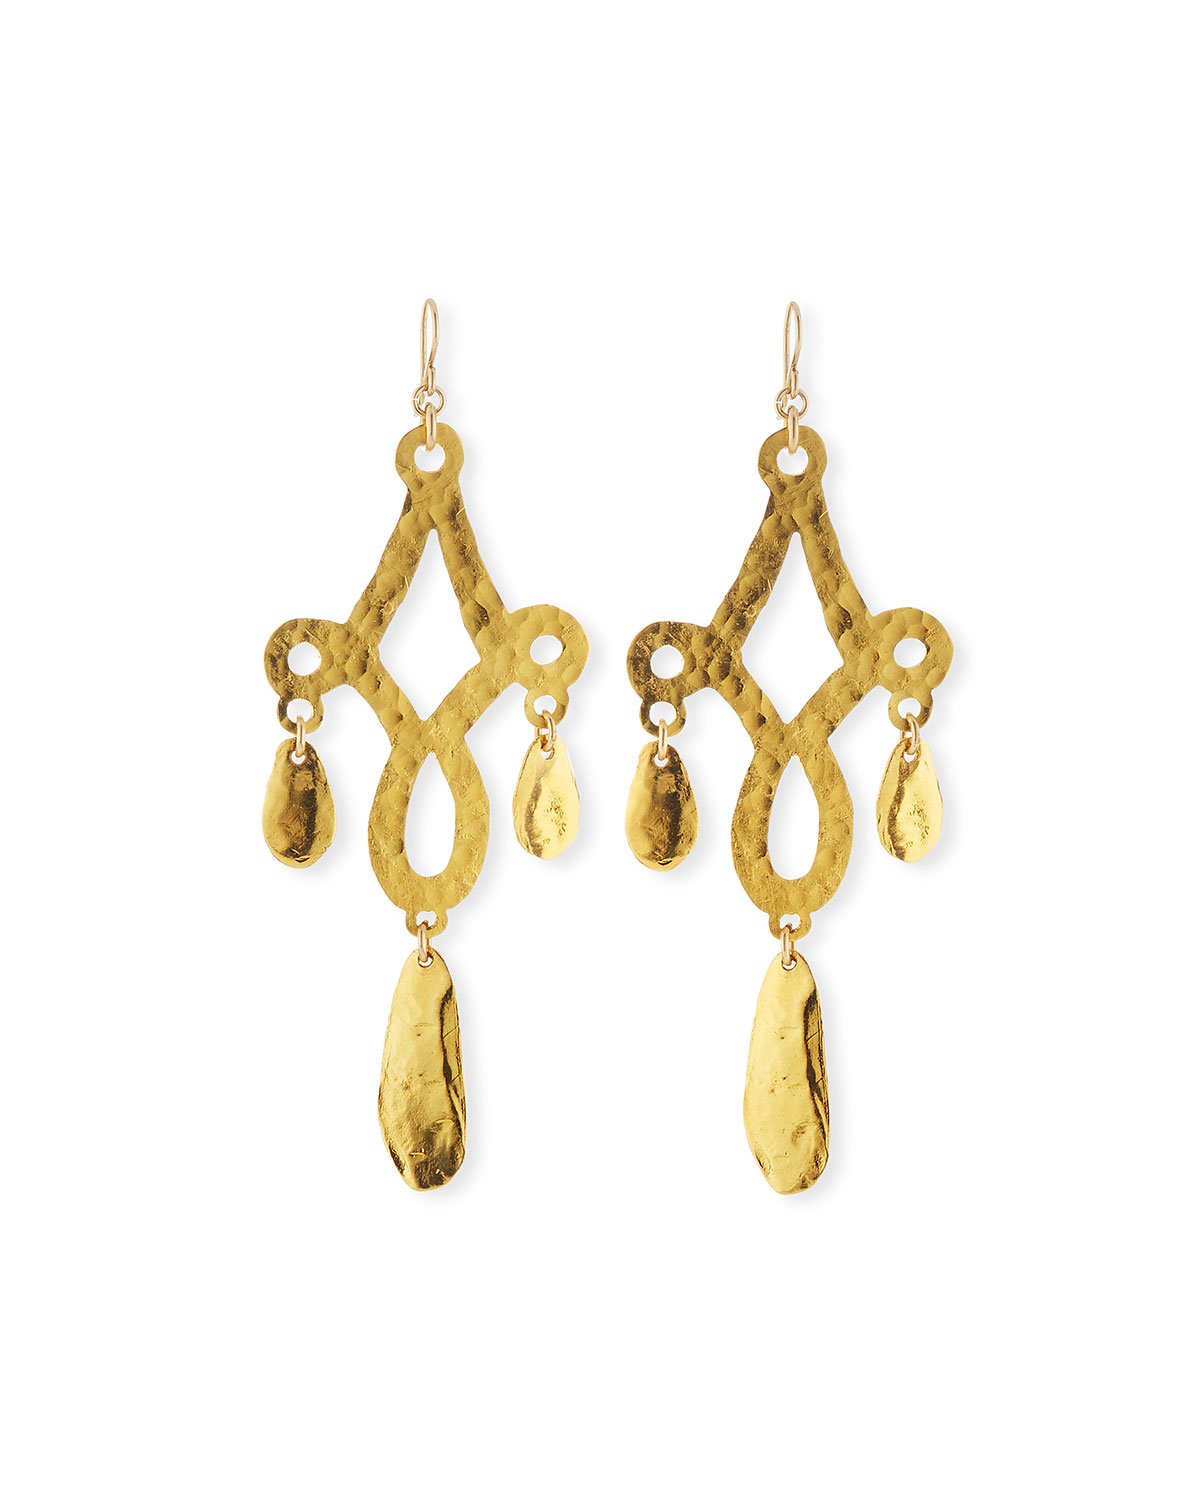 Devon Leigh Hammered Three-Drop Earrings, Gold